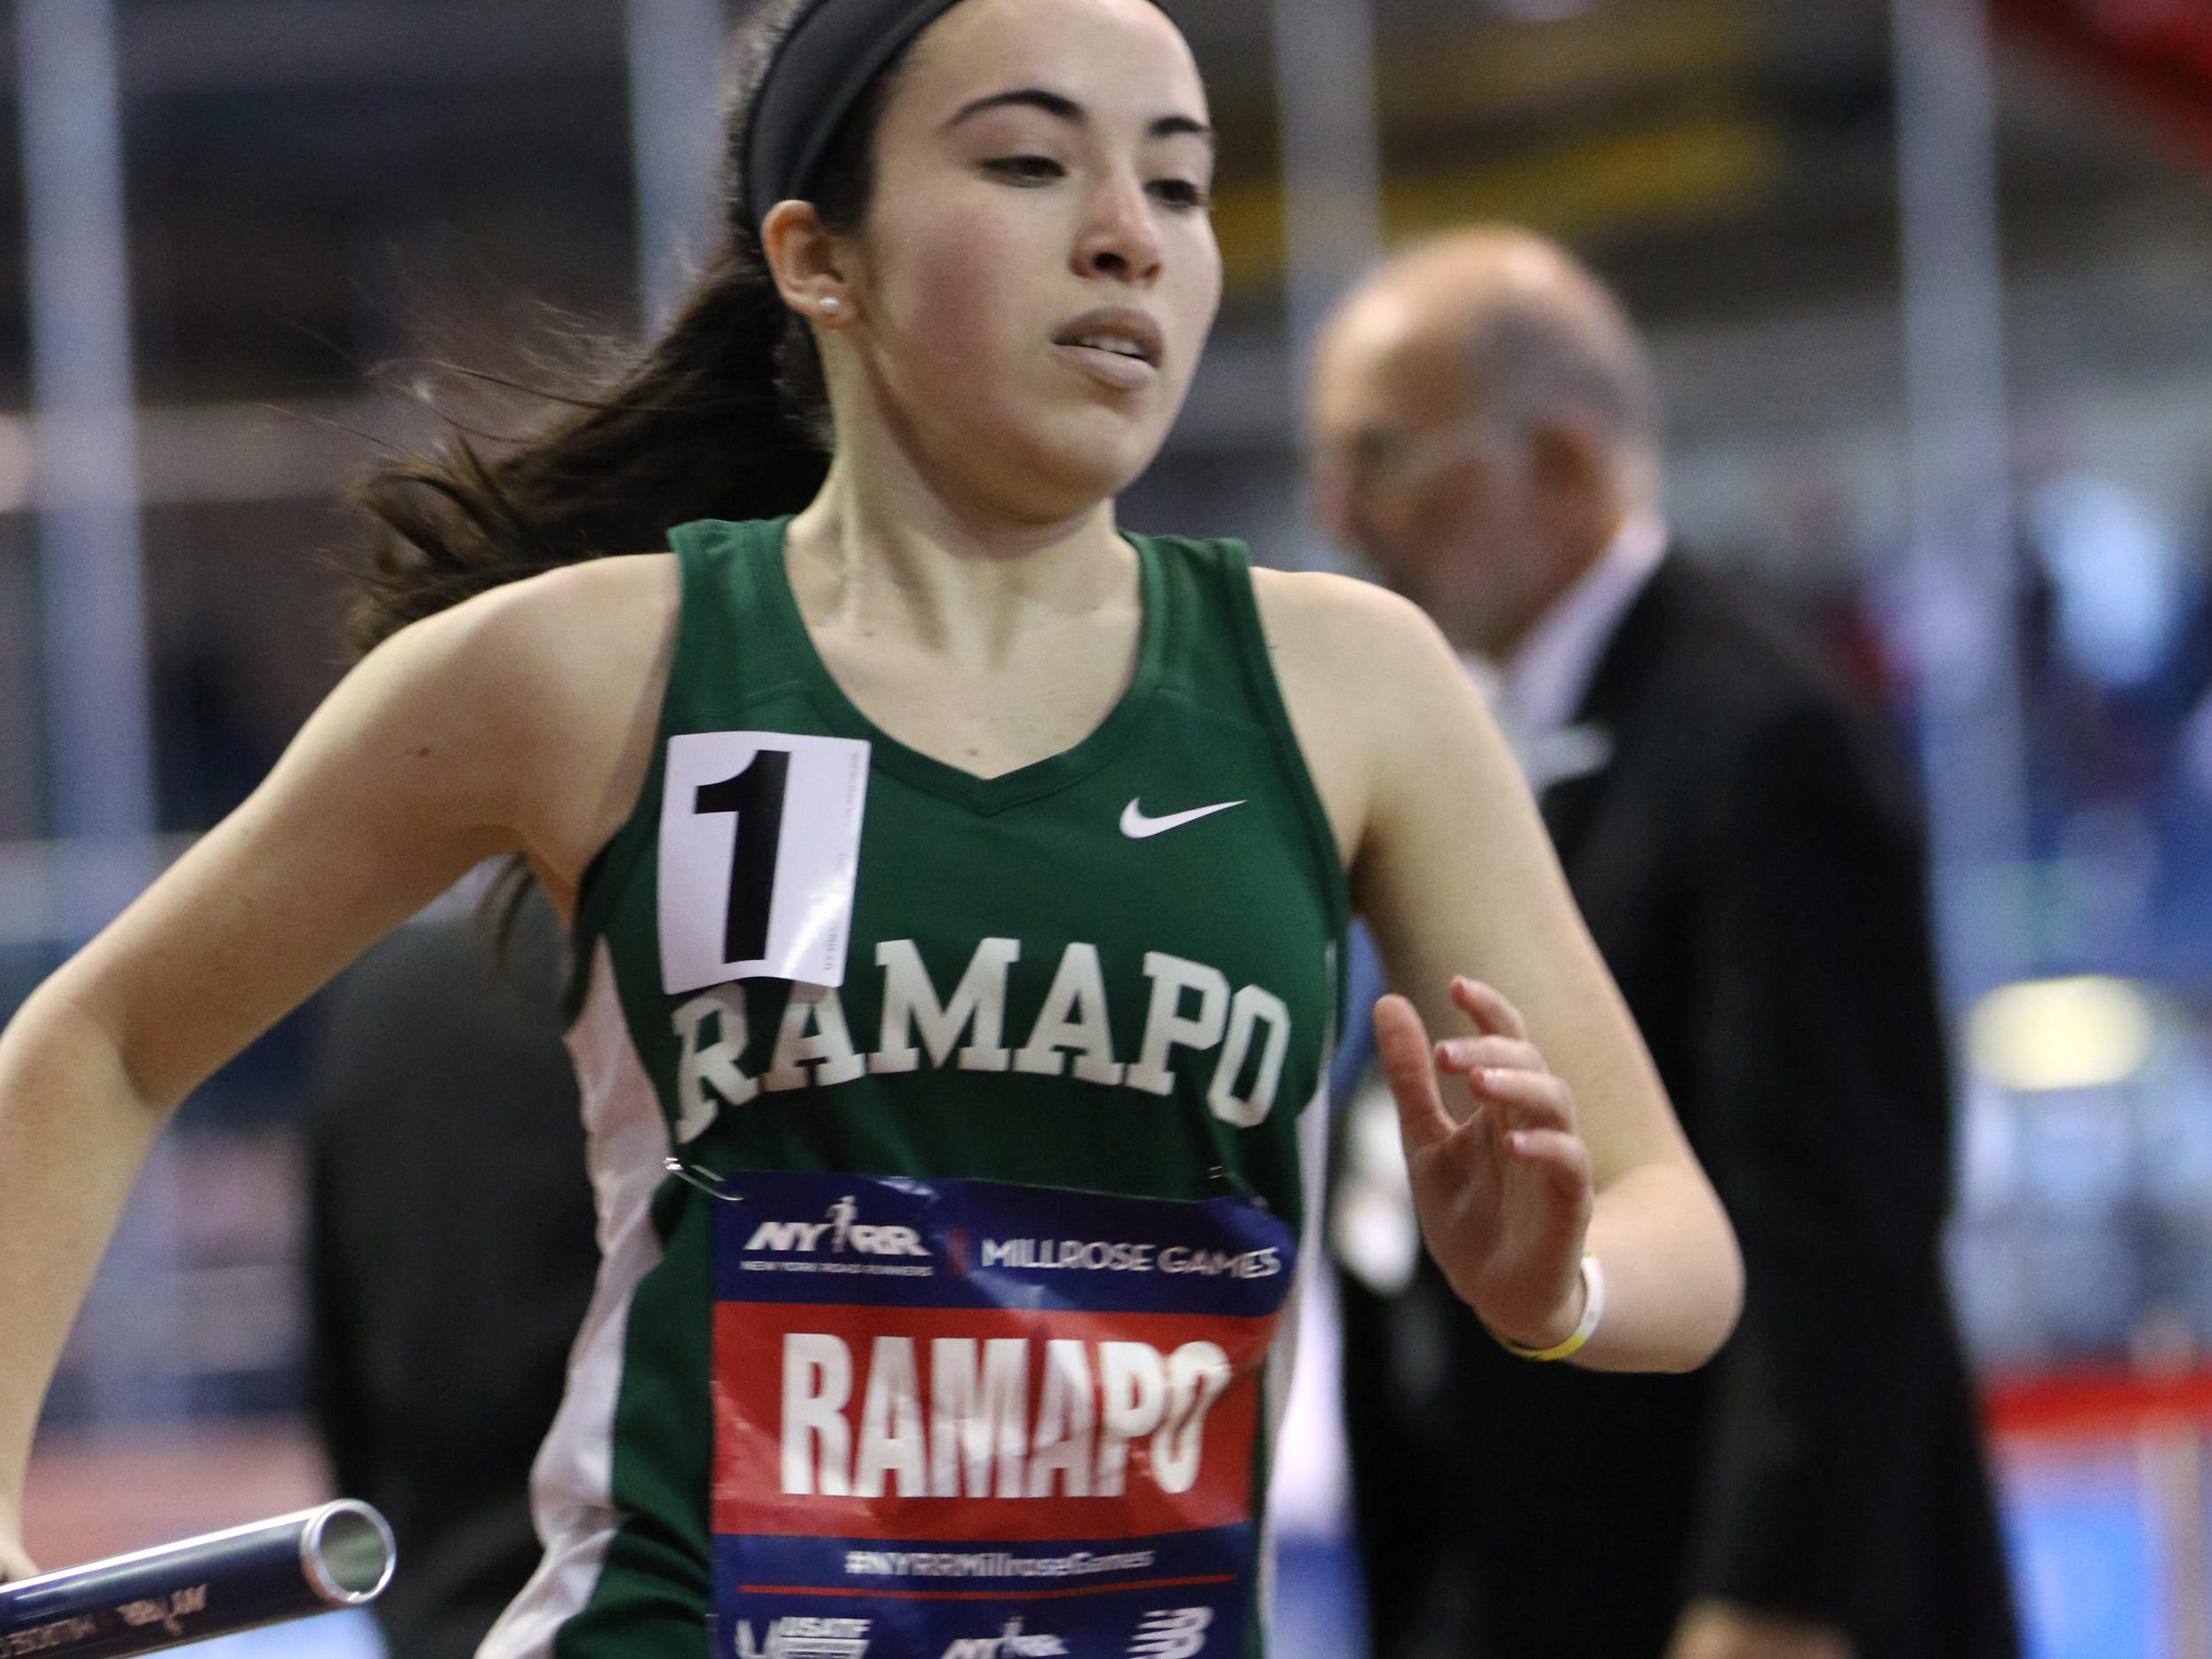 Cortney Lander, of Ramapo, runs the second leg of the 4x400 meter relay. Saturday, February 9, 2019